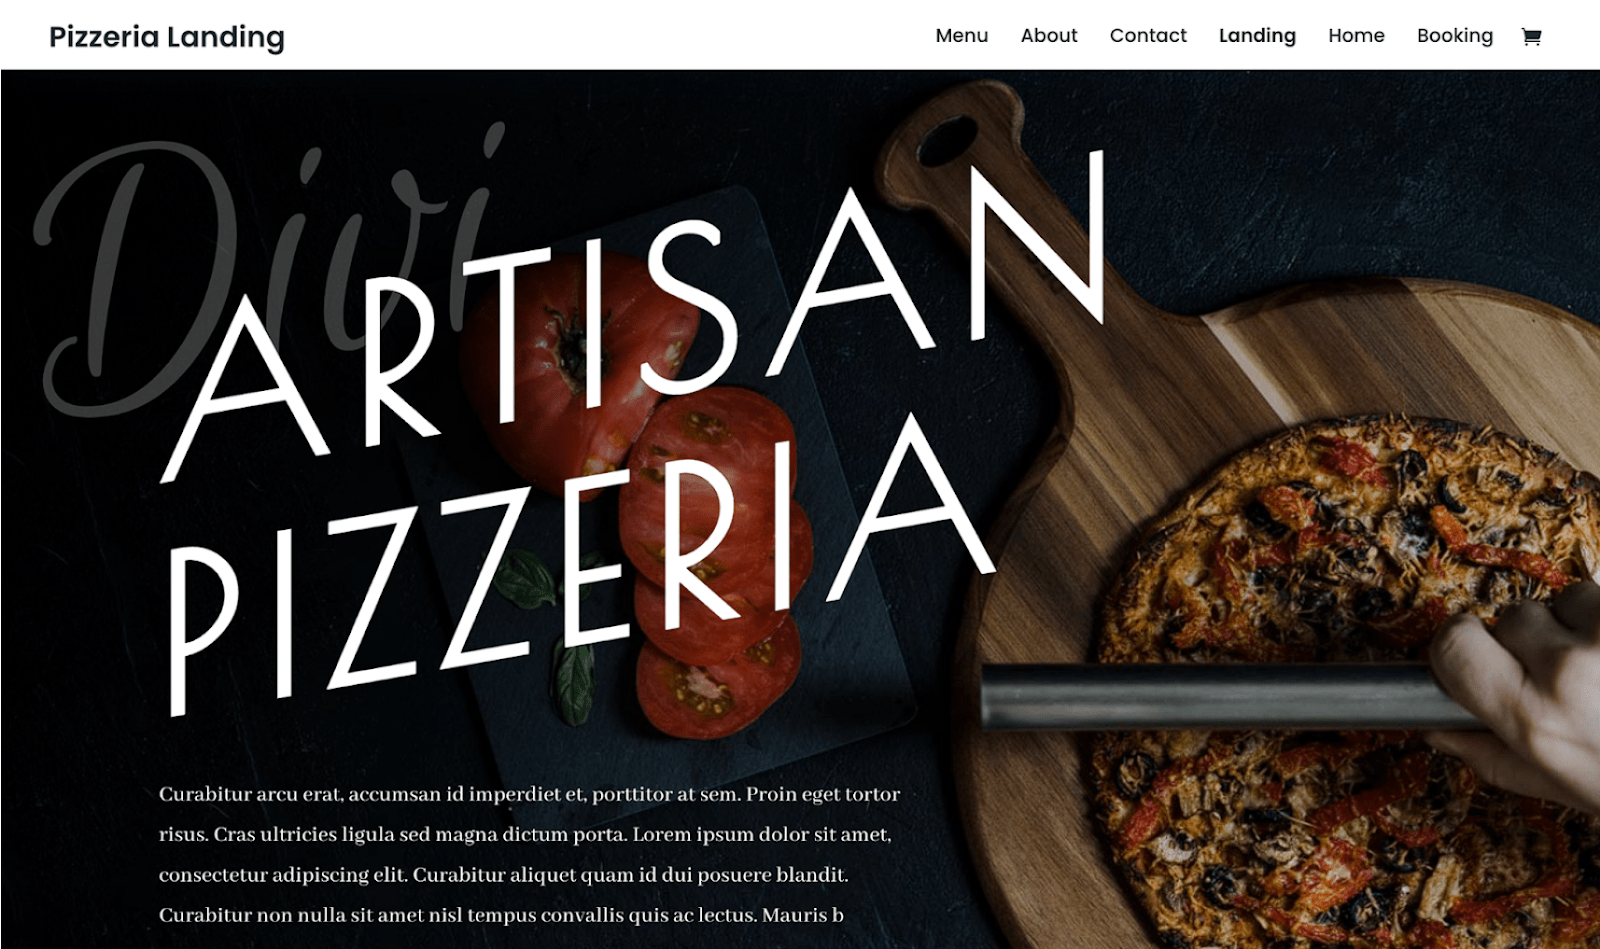 copy-of-the-6-best-restaurant-website-templates-5.png